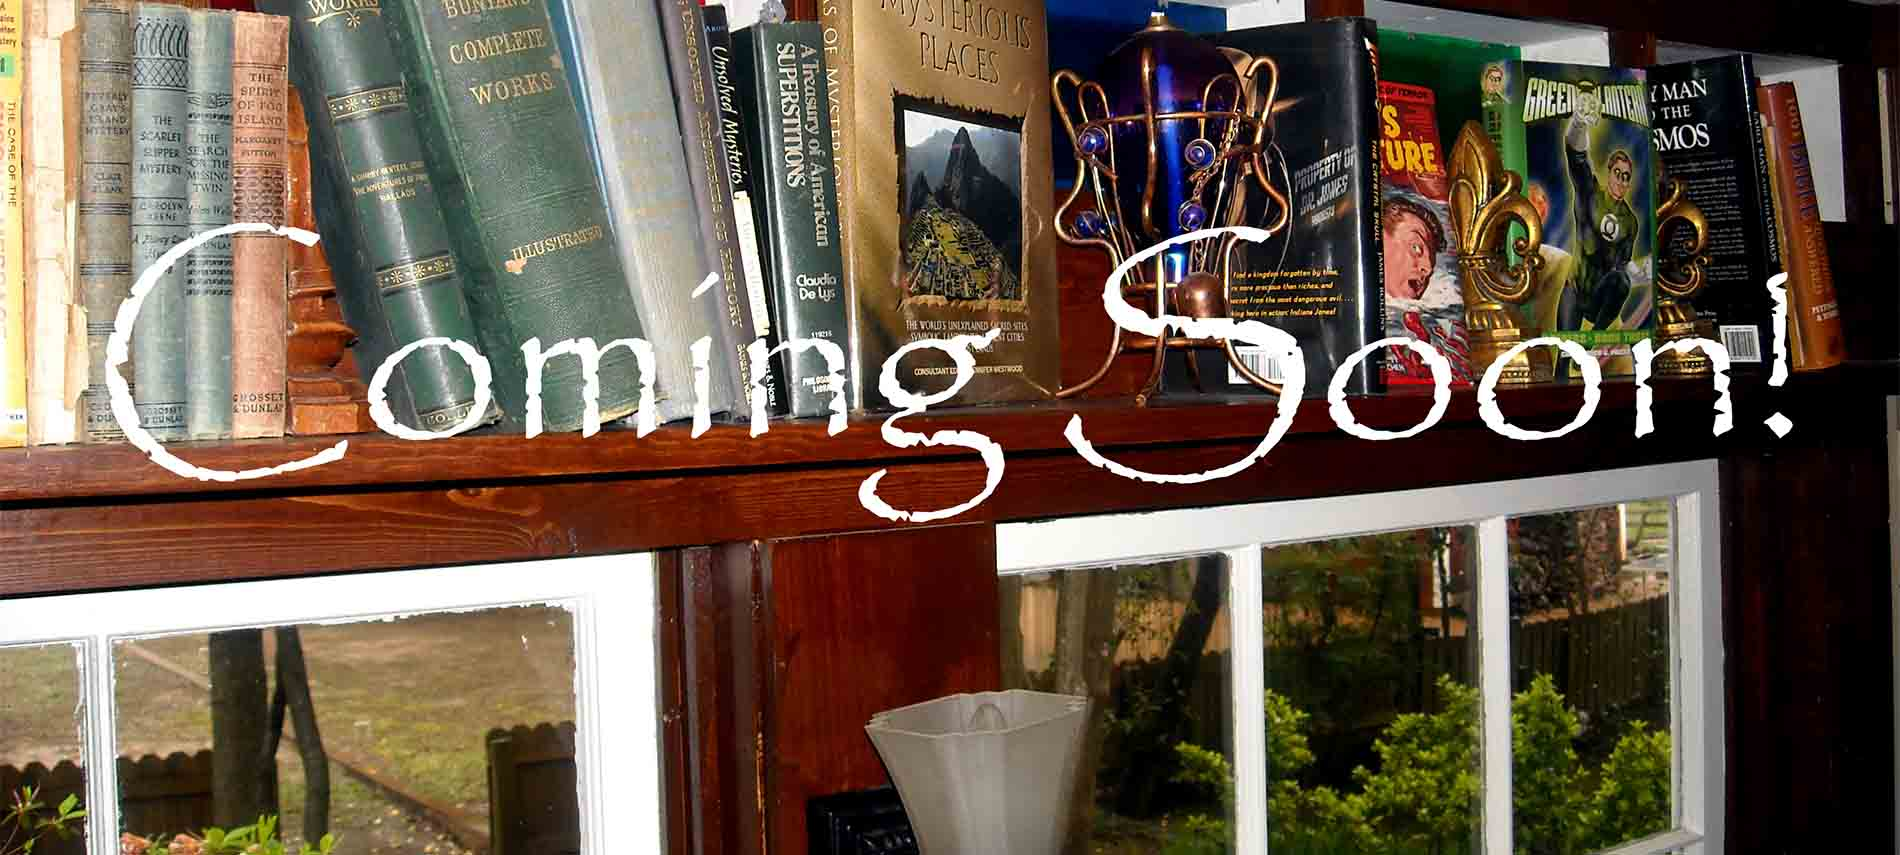 Close-up of antique books on shelf in front of stained glass and above window. Words Coming Soon over all